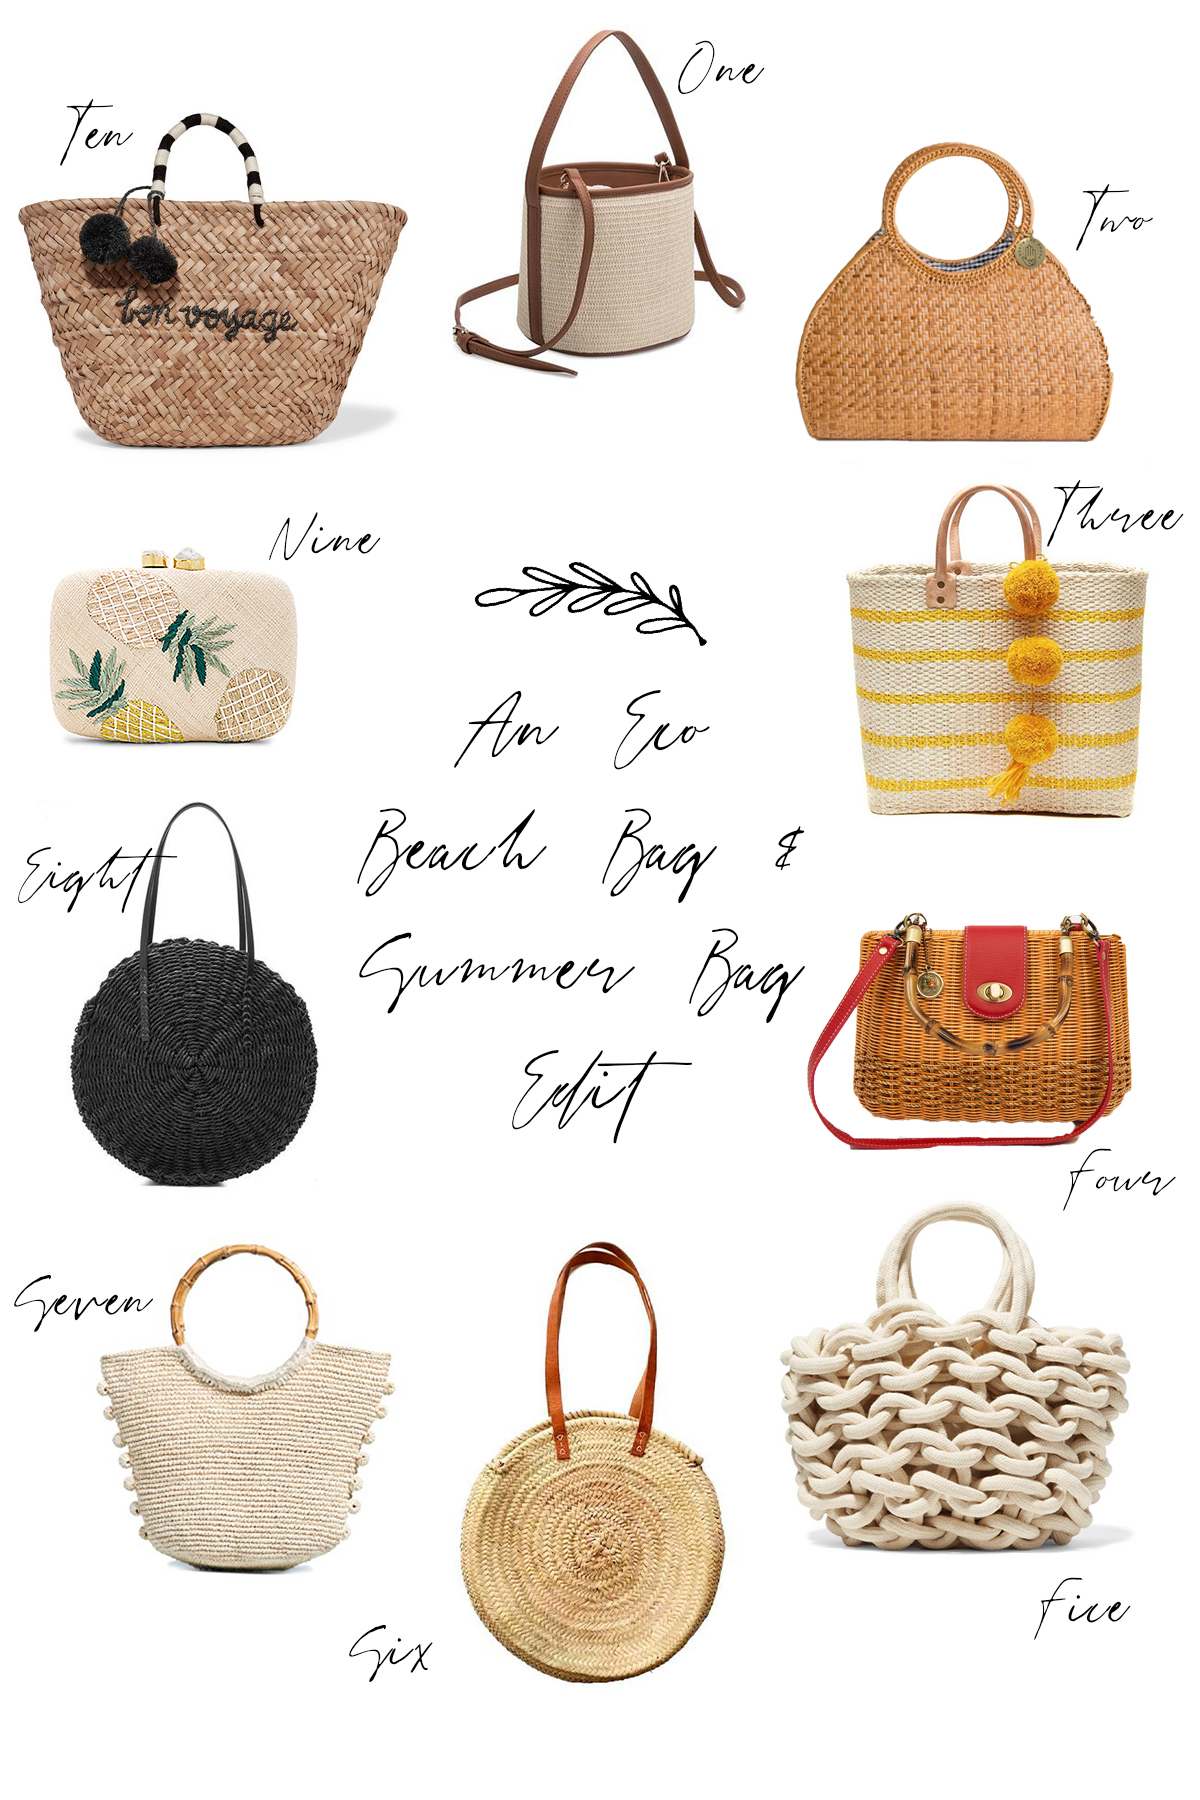 The Eco Becah Bag & Summer Bag Edit for SS 2018 | Wolf & Stag